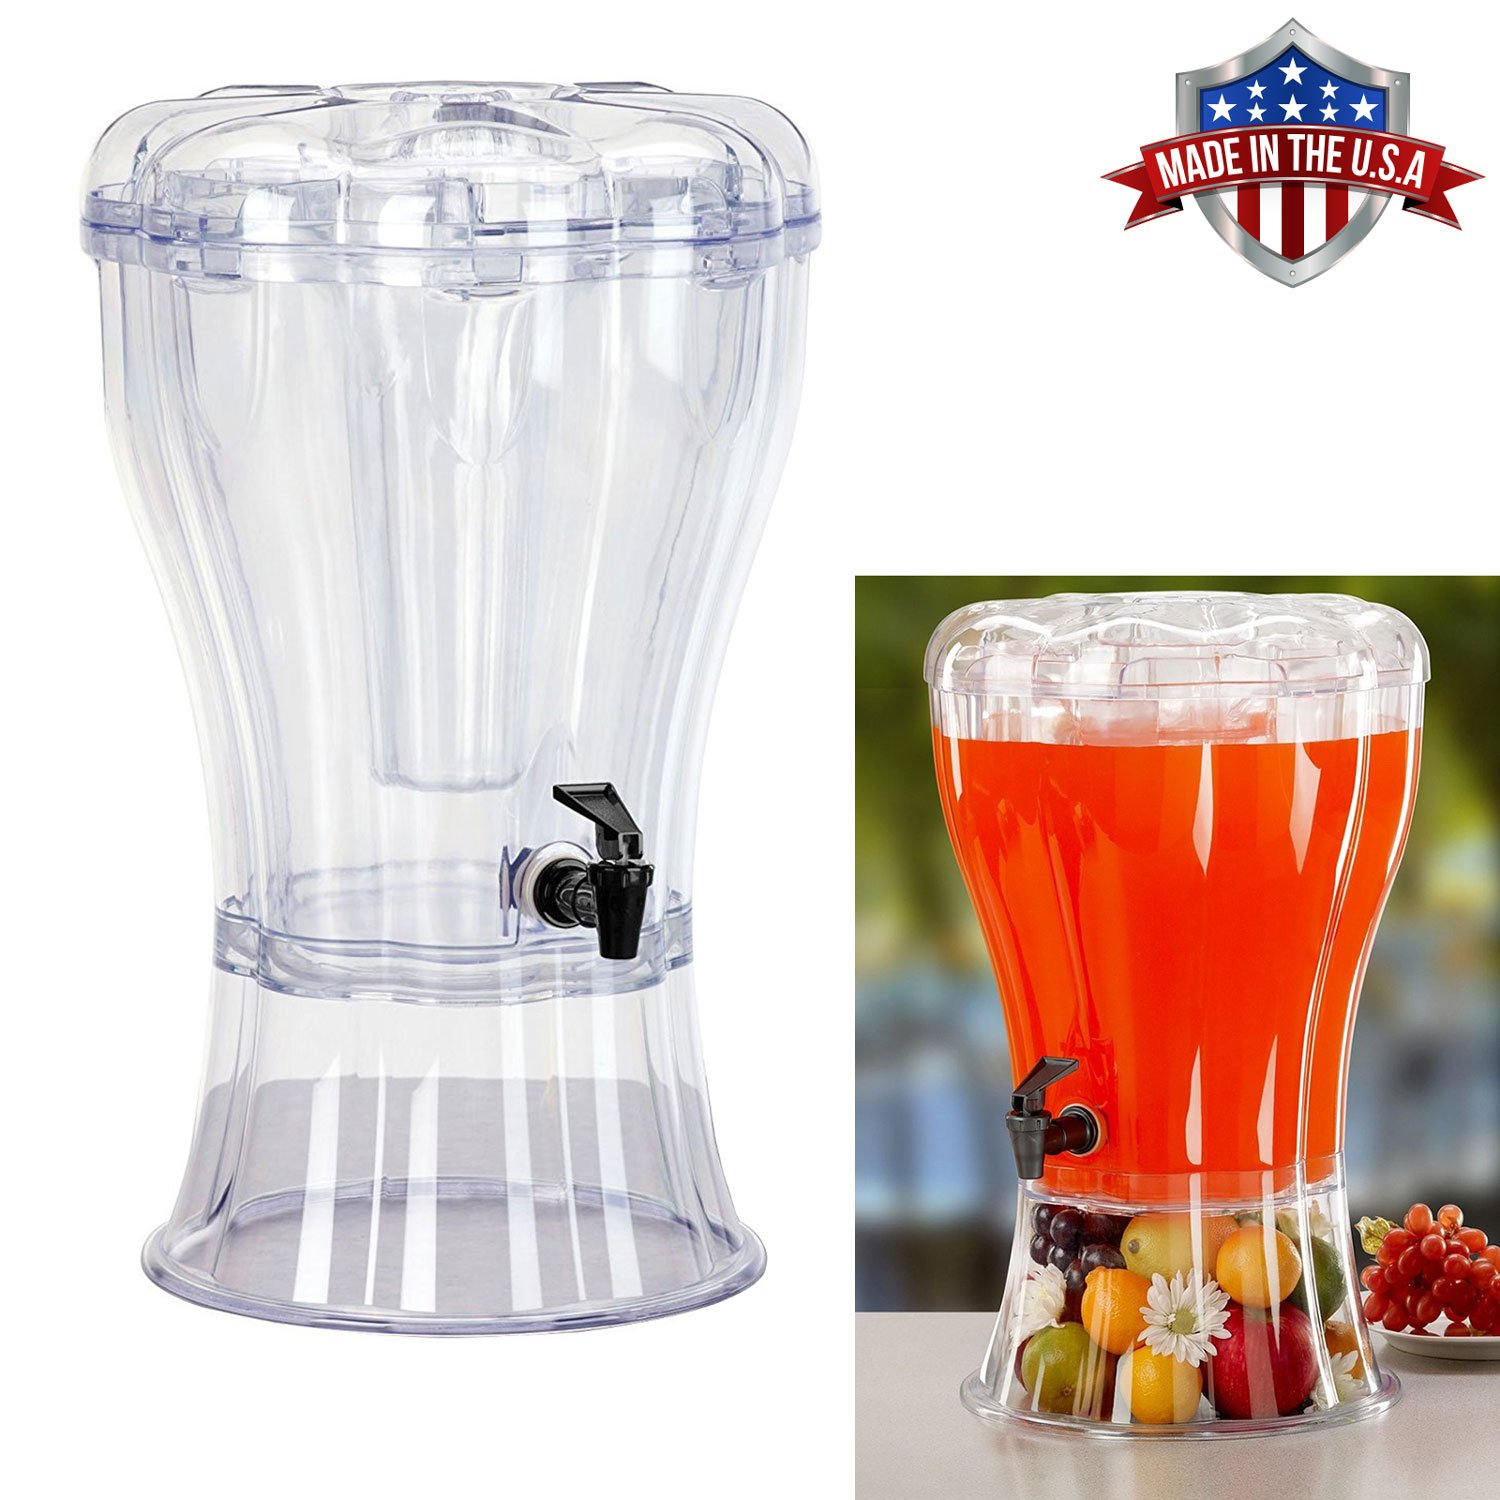 Cold Beverage Drink Dispenser Unbreakable 3.5 Gallon BPA Free with Ice Cone, Parties, Weddings, Catering, Events HowPlumb 00-DRINK-DISPENSER-085